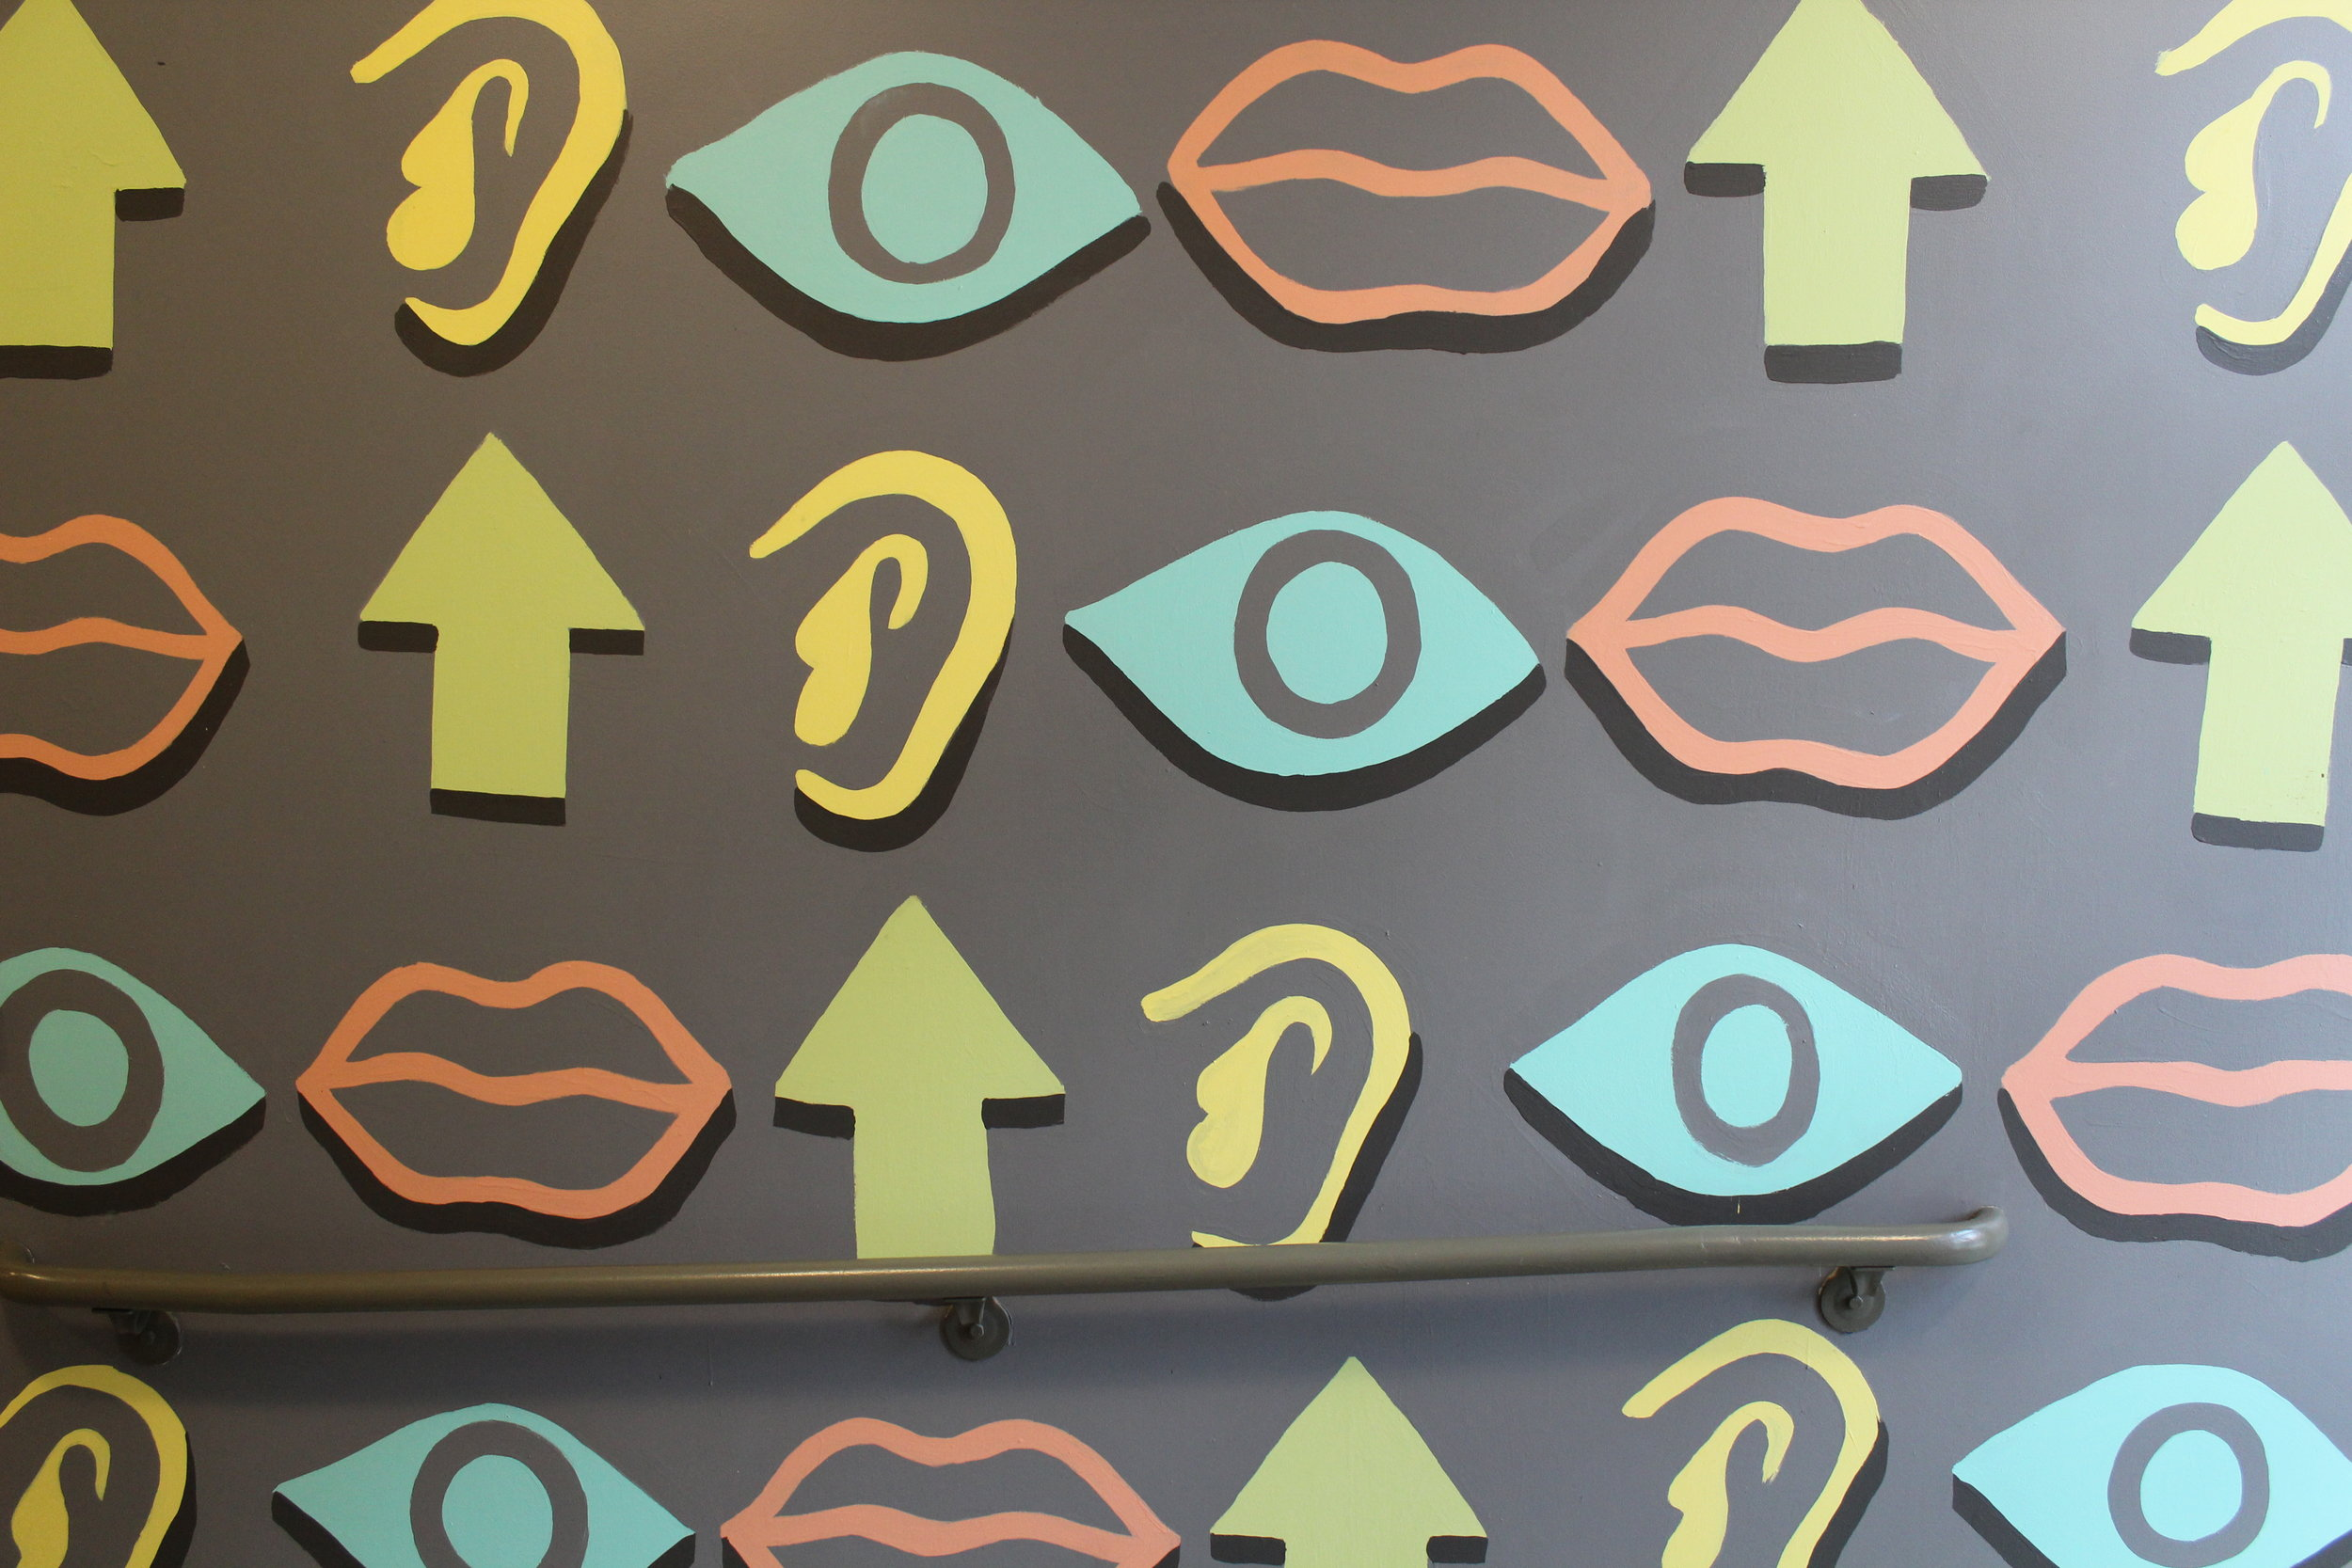 Detail of eyes, lips, ears, and arrow pattern in Artworks mural